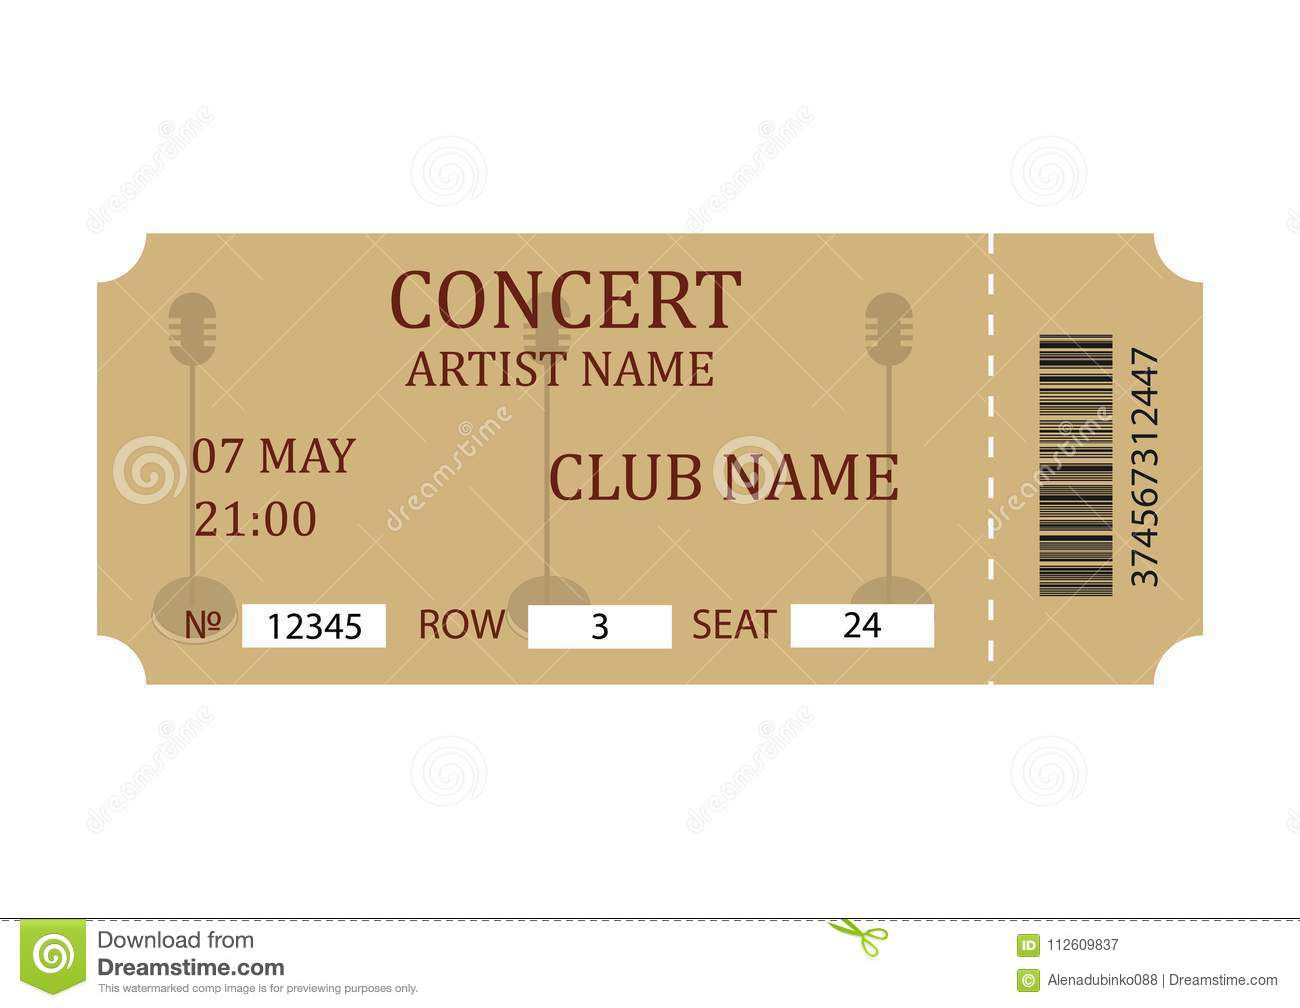 004 Exceptional Vintage Concert Ticket Template Free Download Sample Full